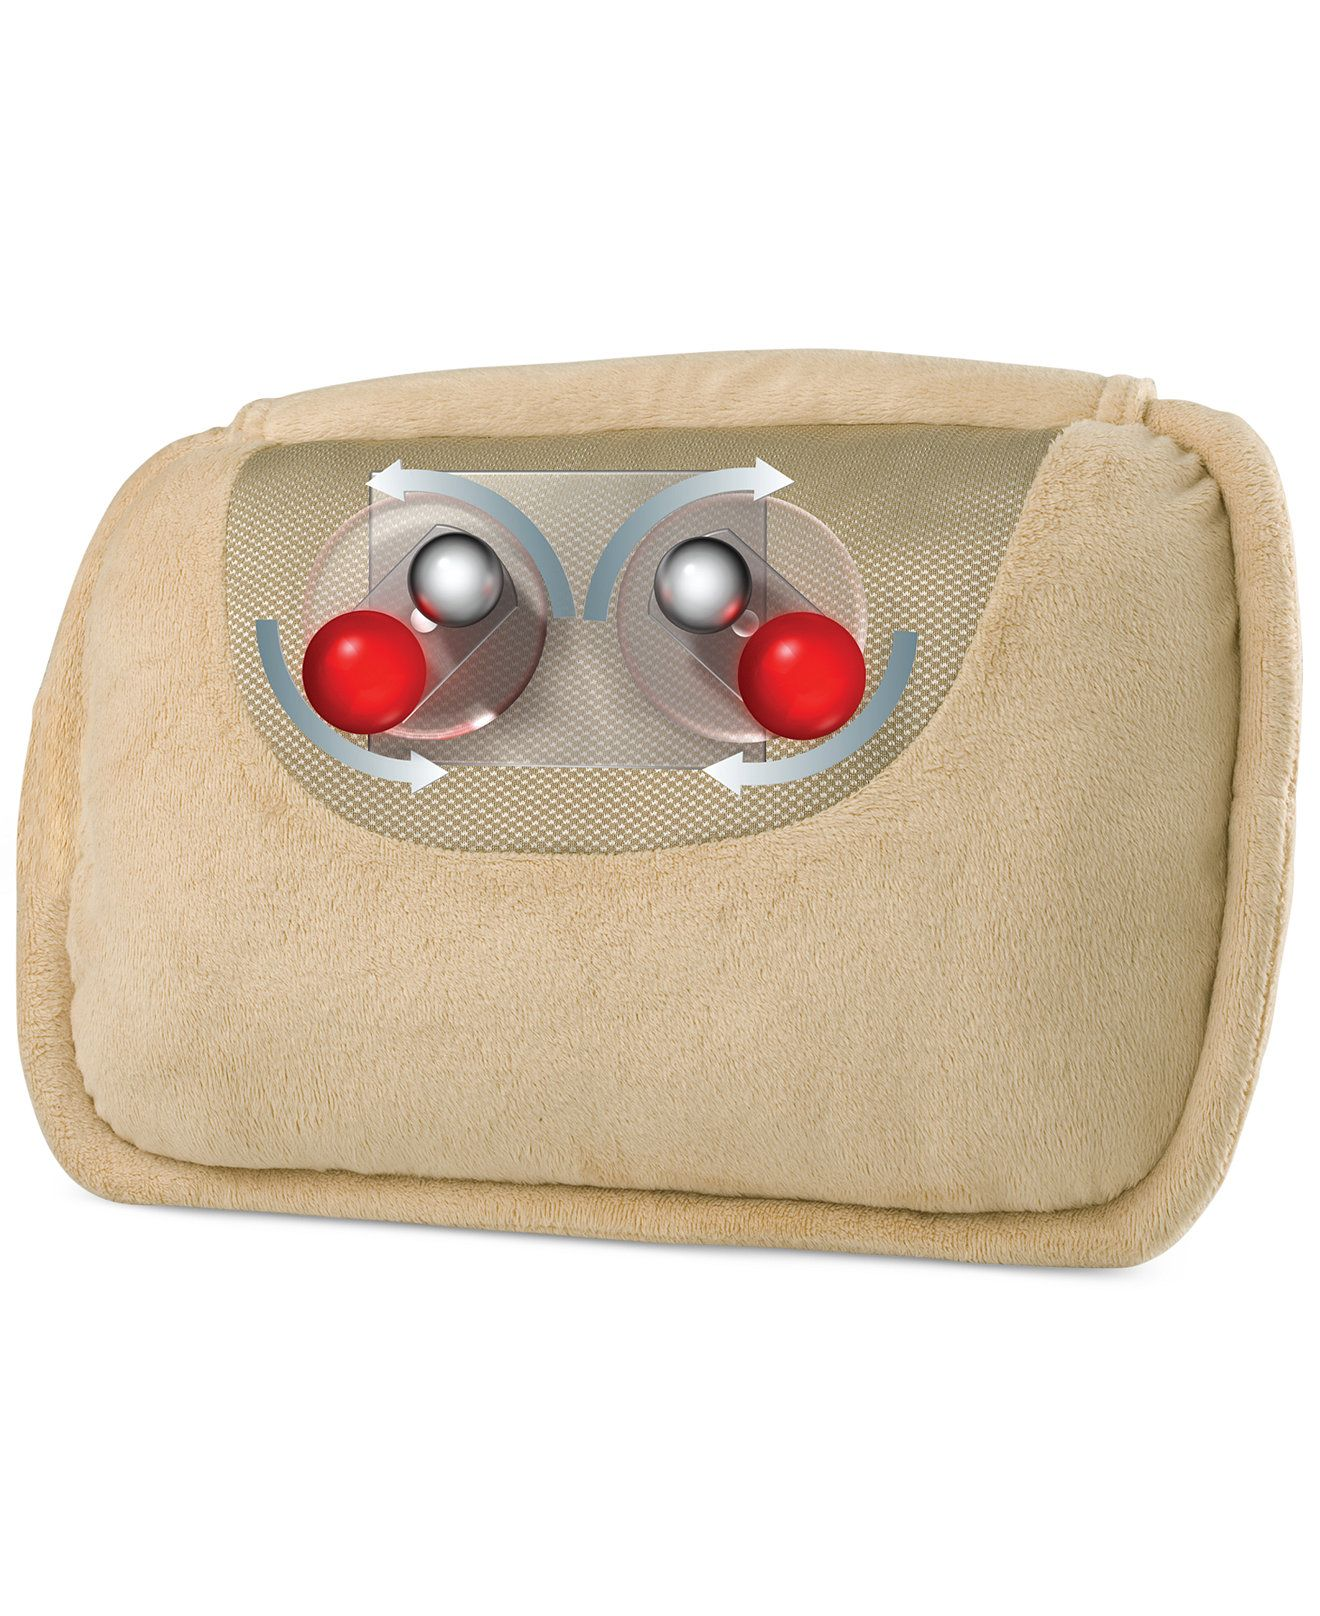 The Heated Shiatsu Massage Pillow